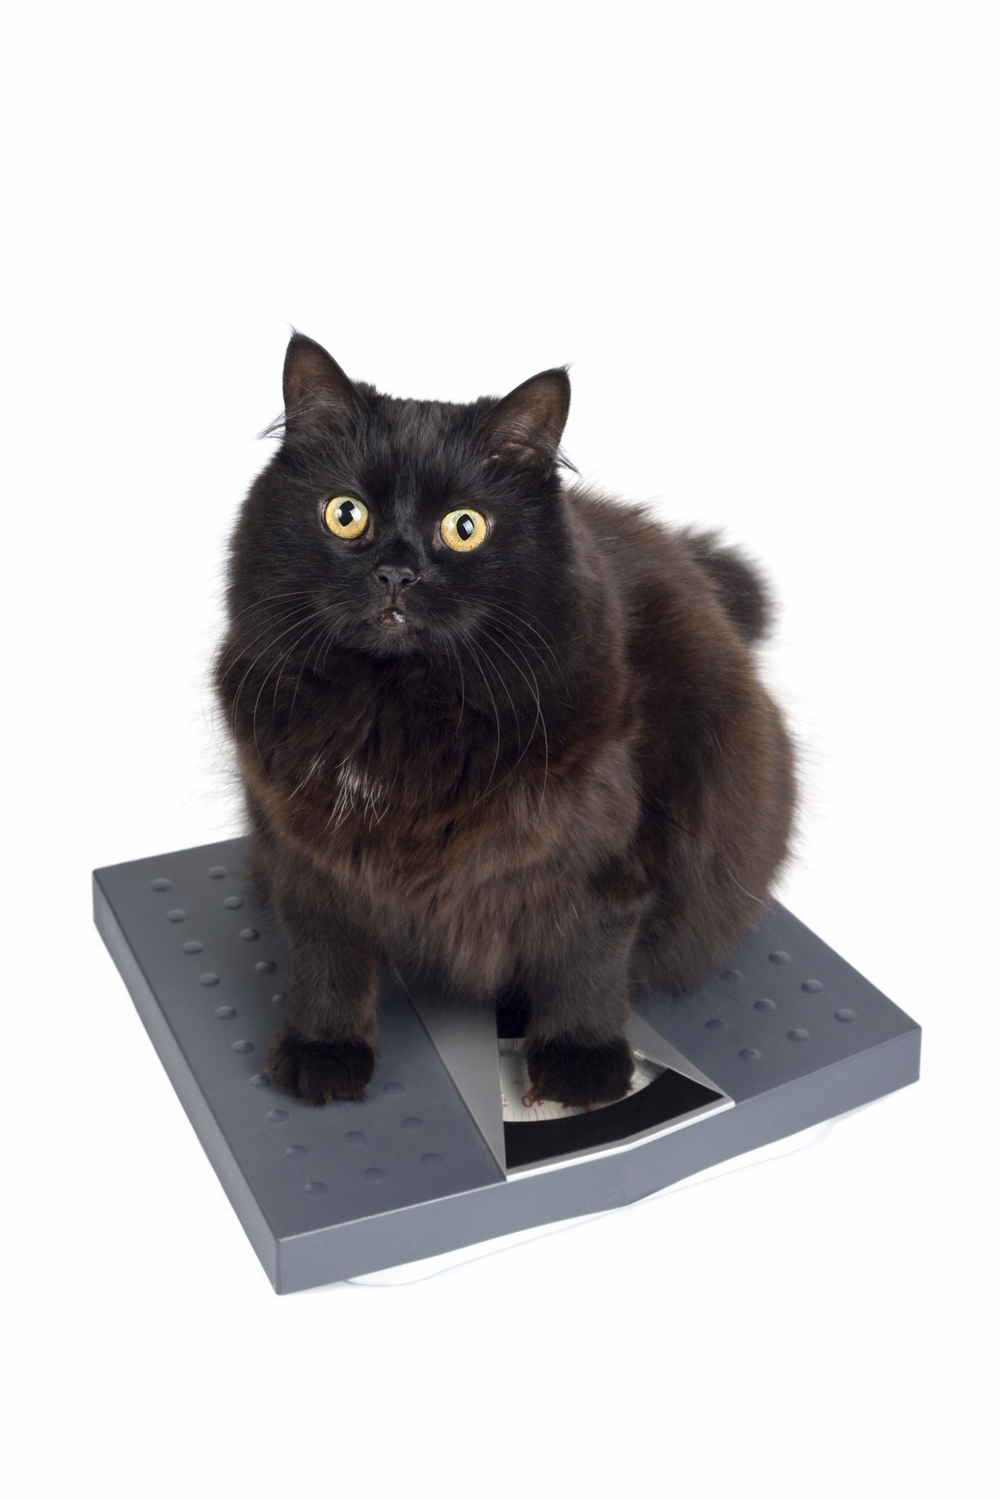 Is my cat a good weight?